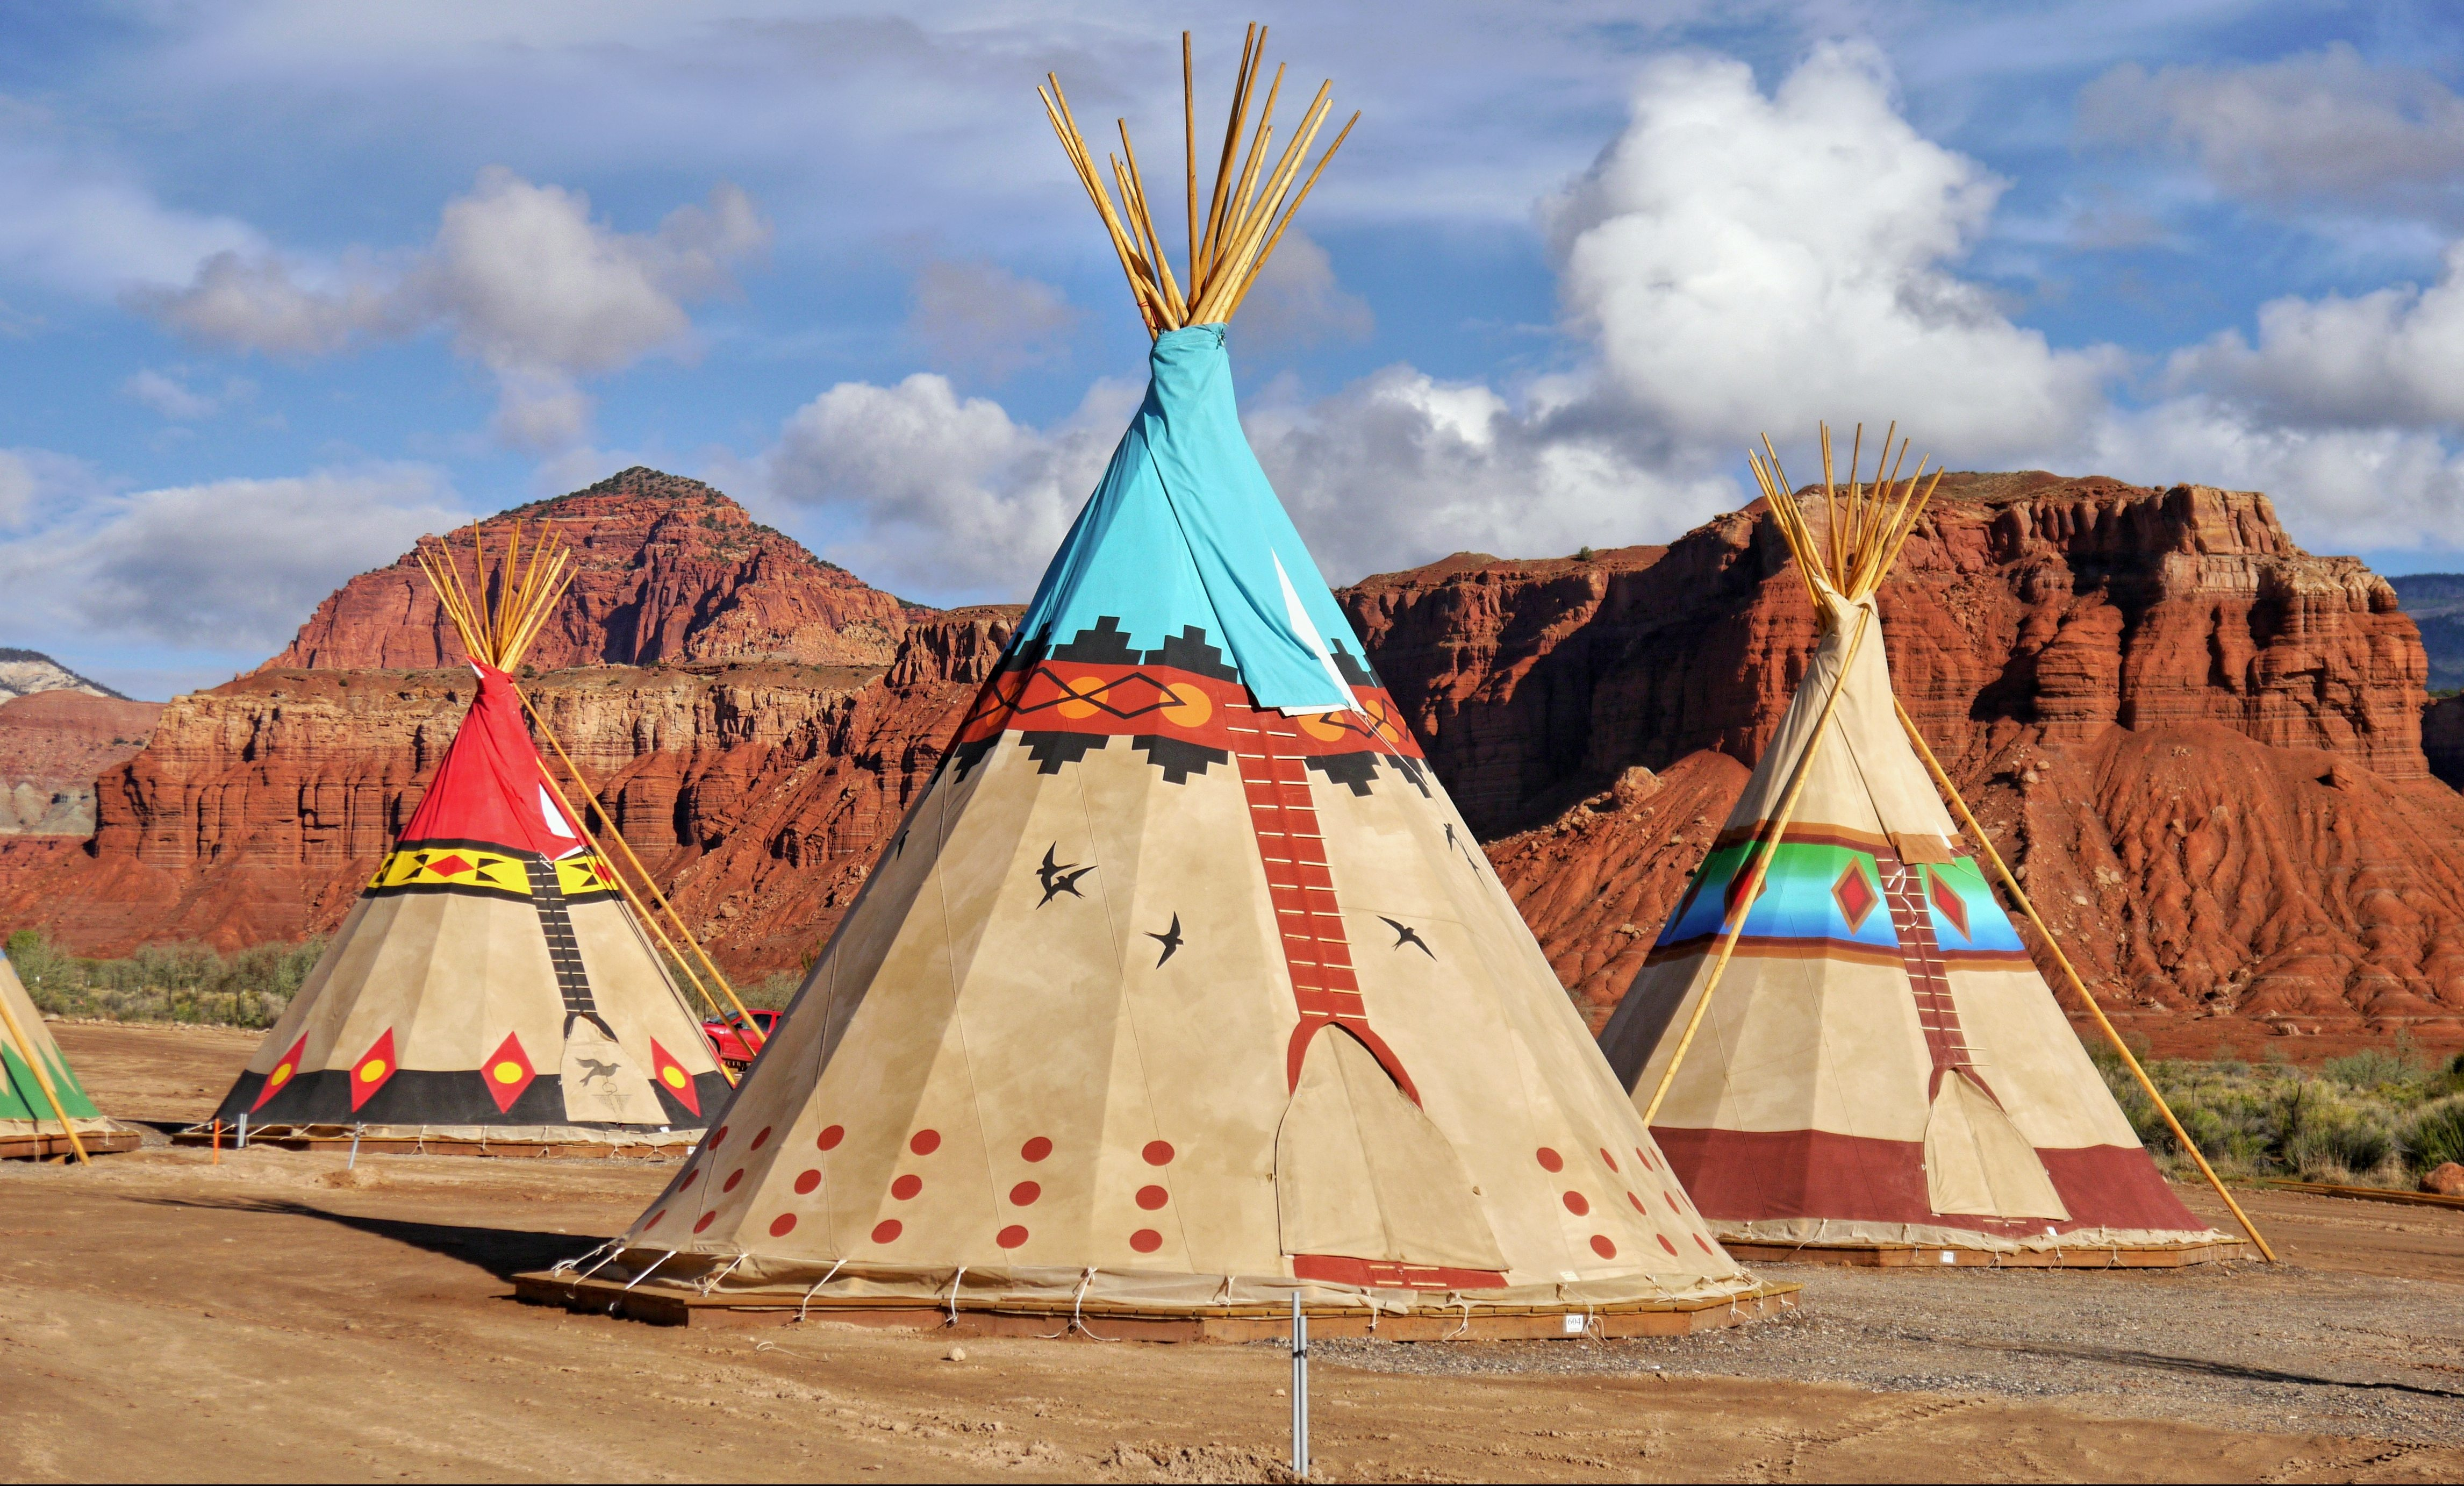 tipi indien st joseph du dakota. Black Bedroom Furniture Sets. Home Design Ideas